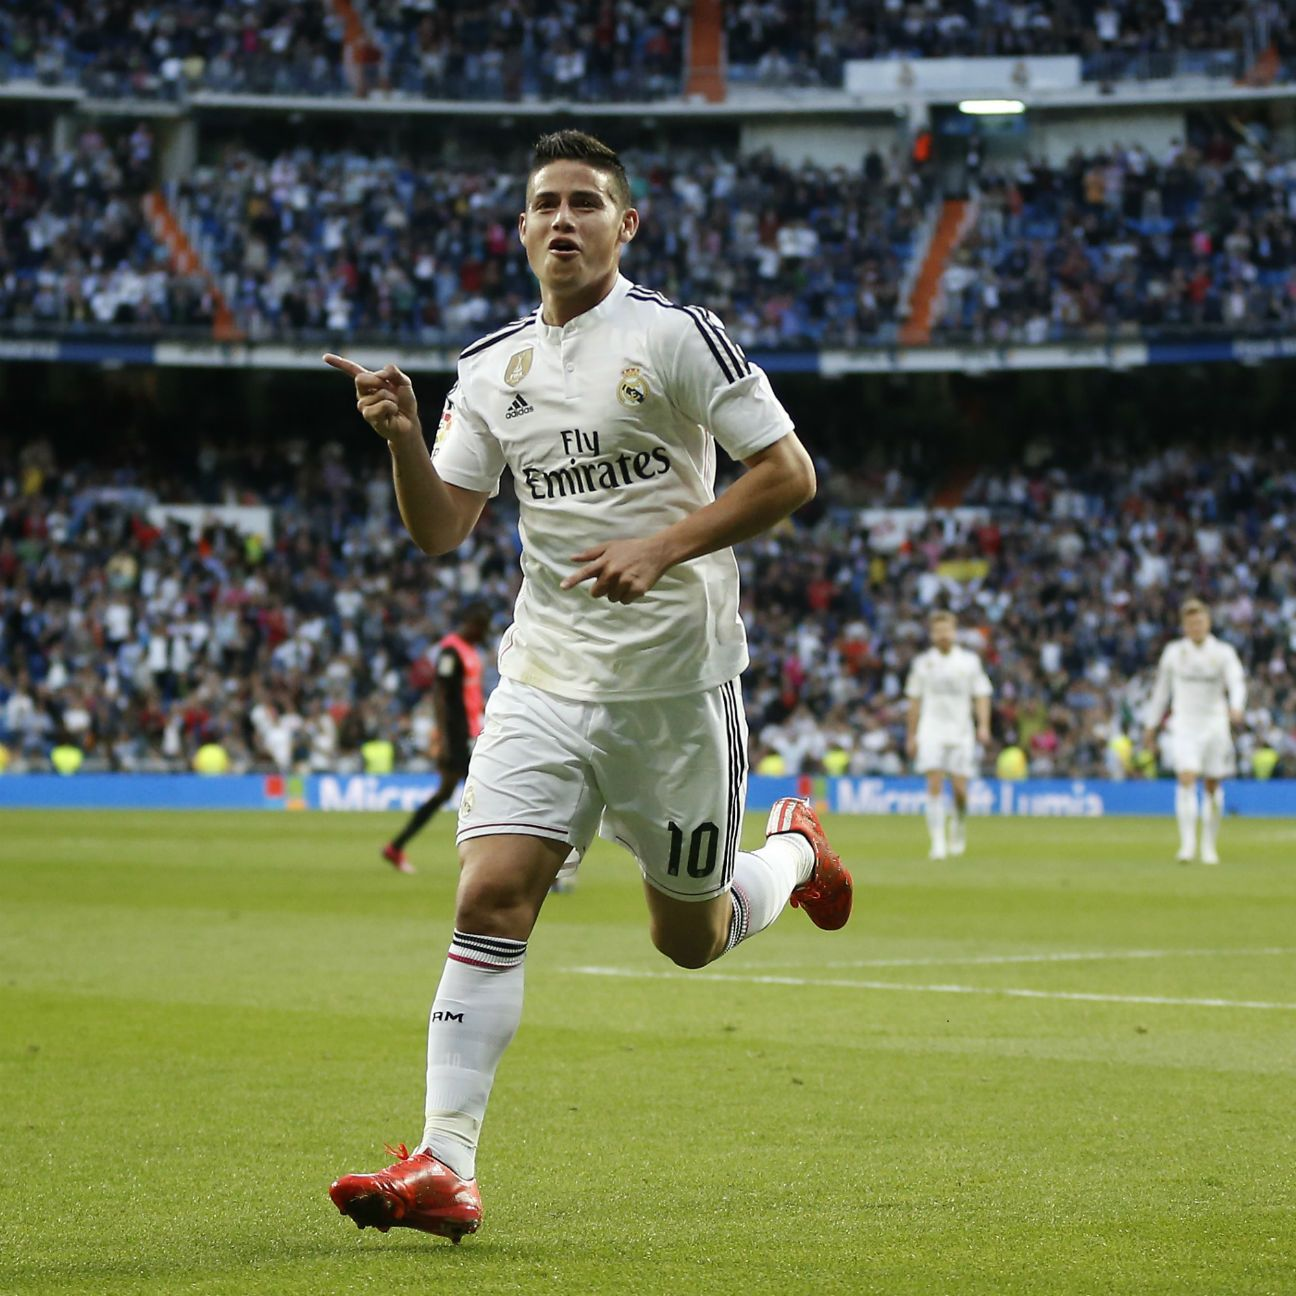 James' <i>golazo</i> ensured that Real Madrid did not lose any ground to league leaders Barcelona.